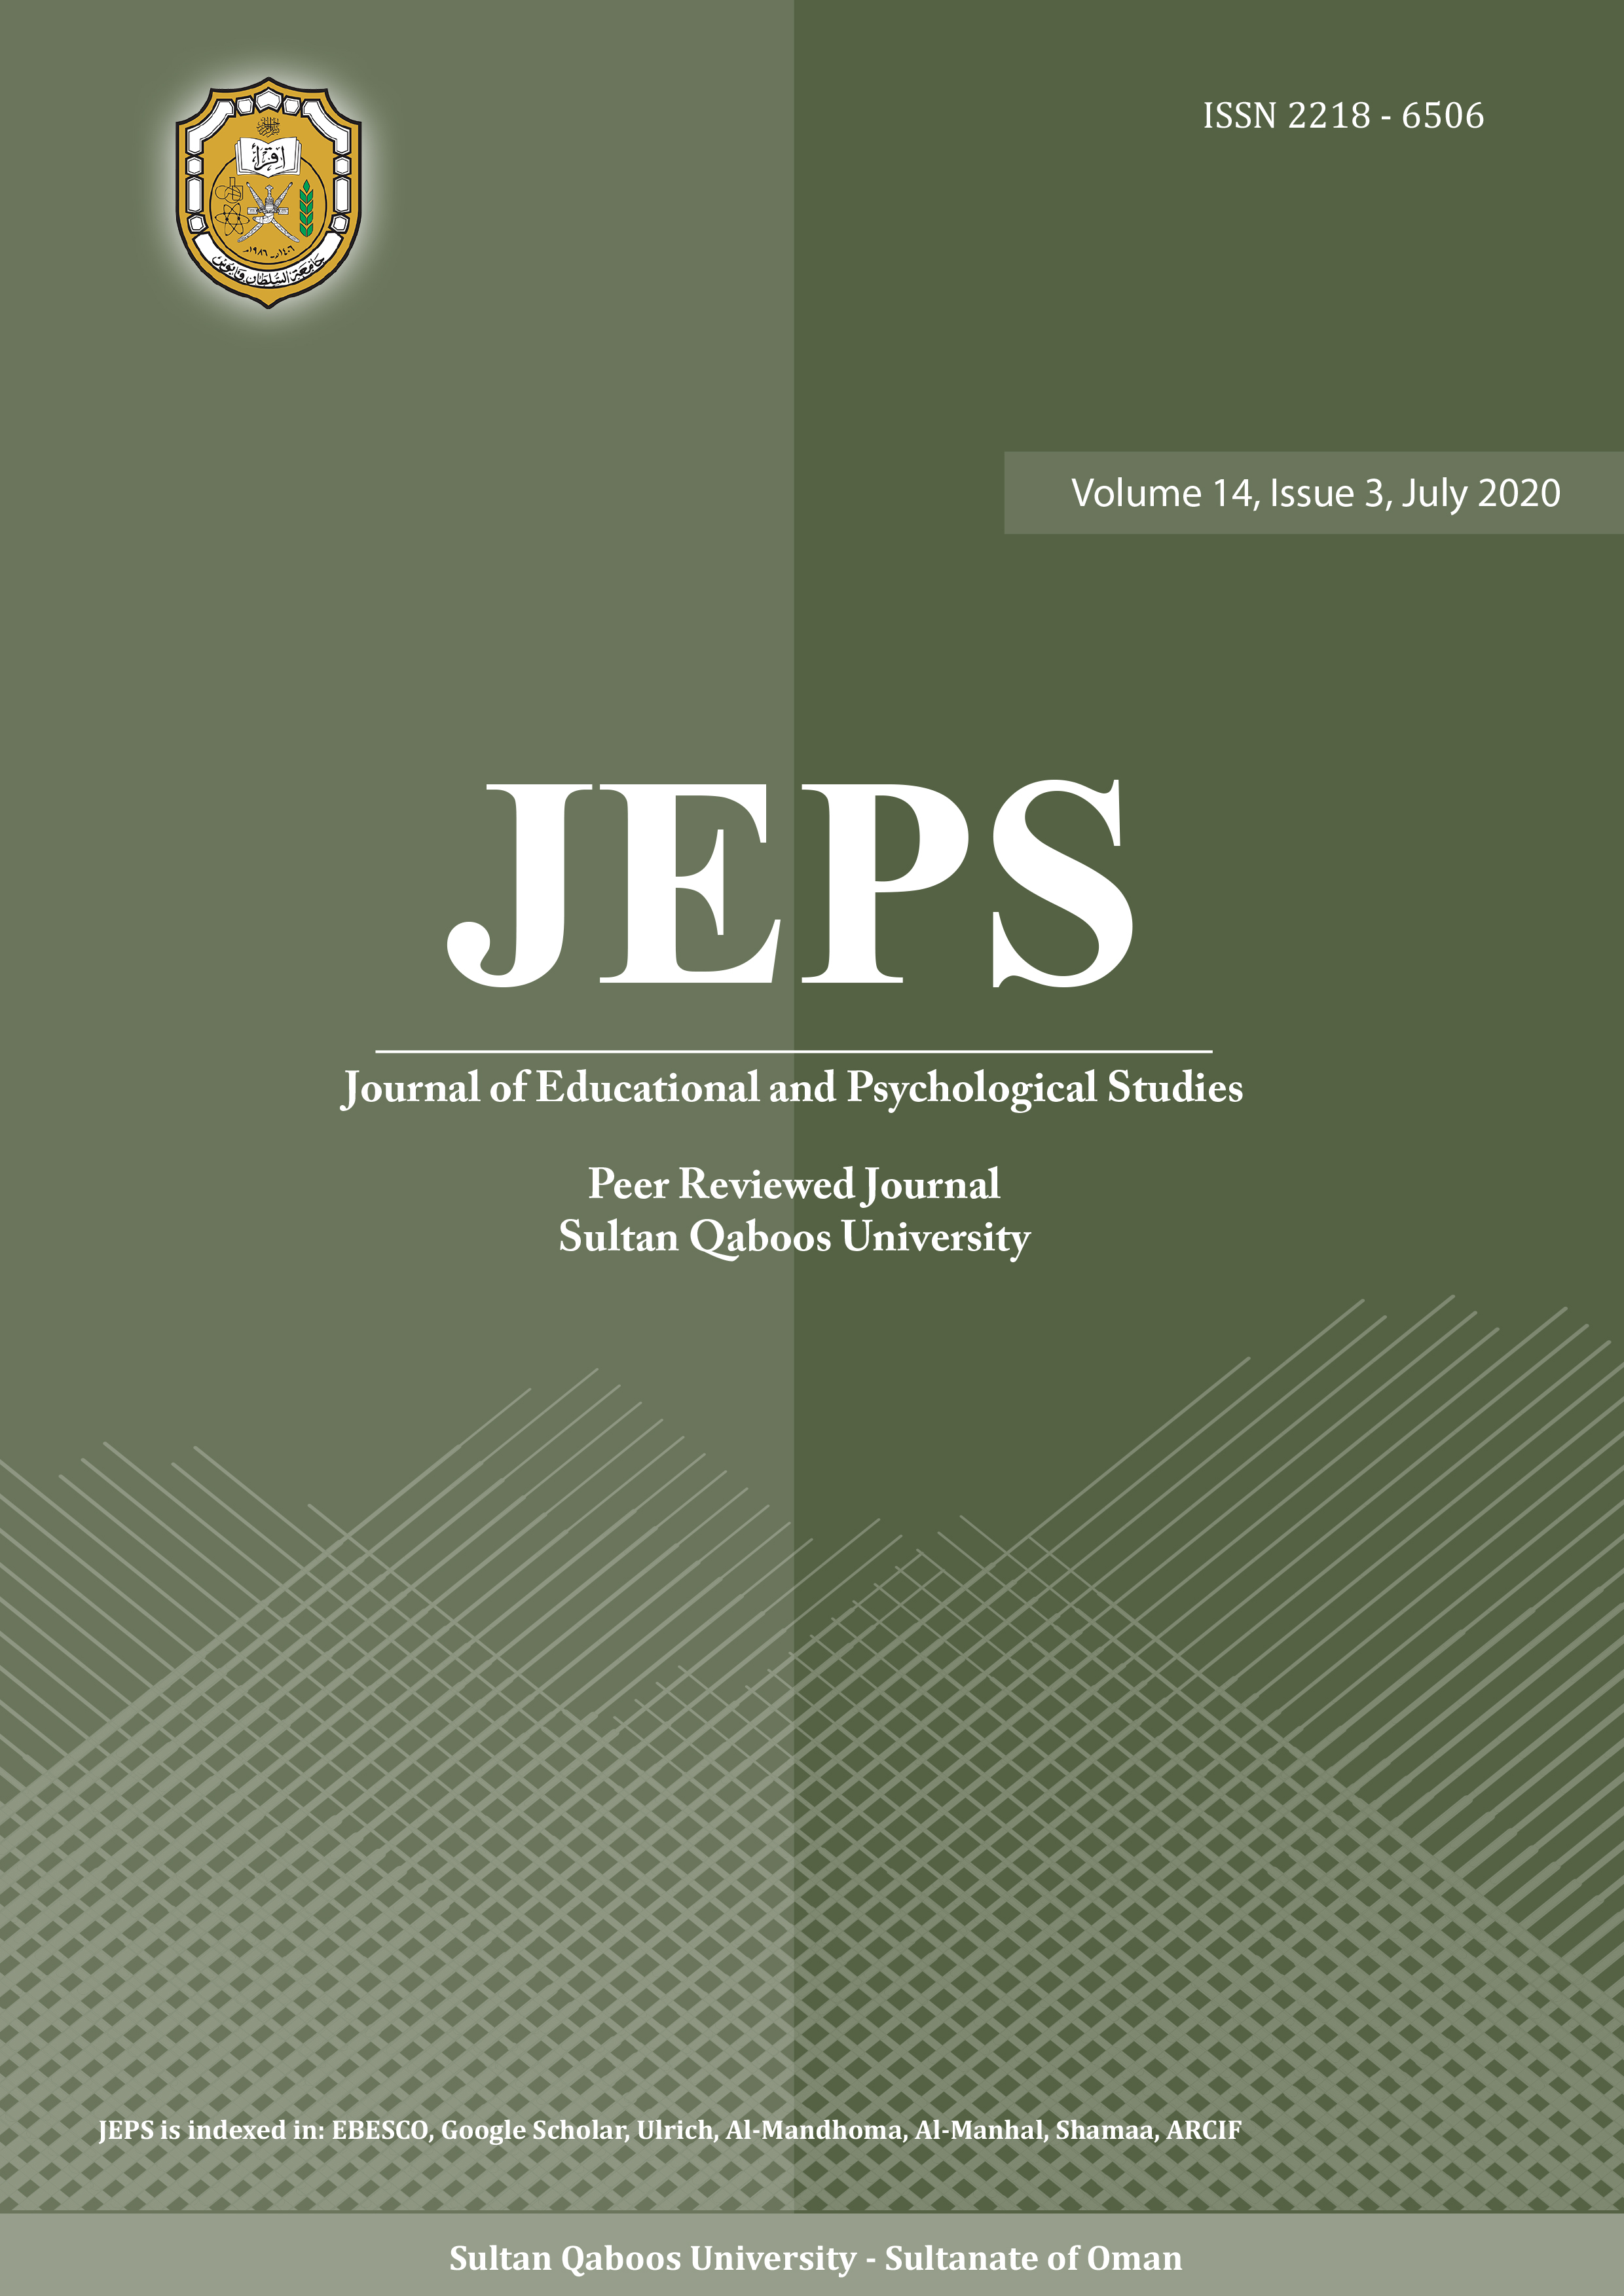 Journal of Educational and Psychological Studies